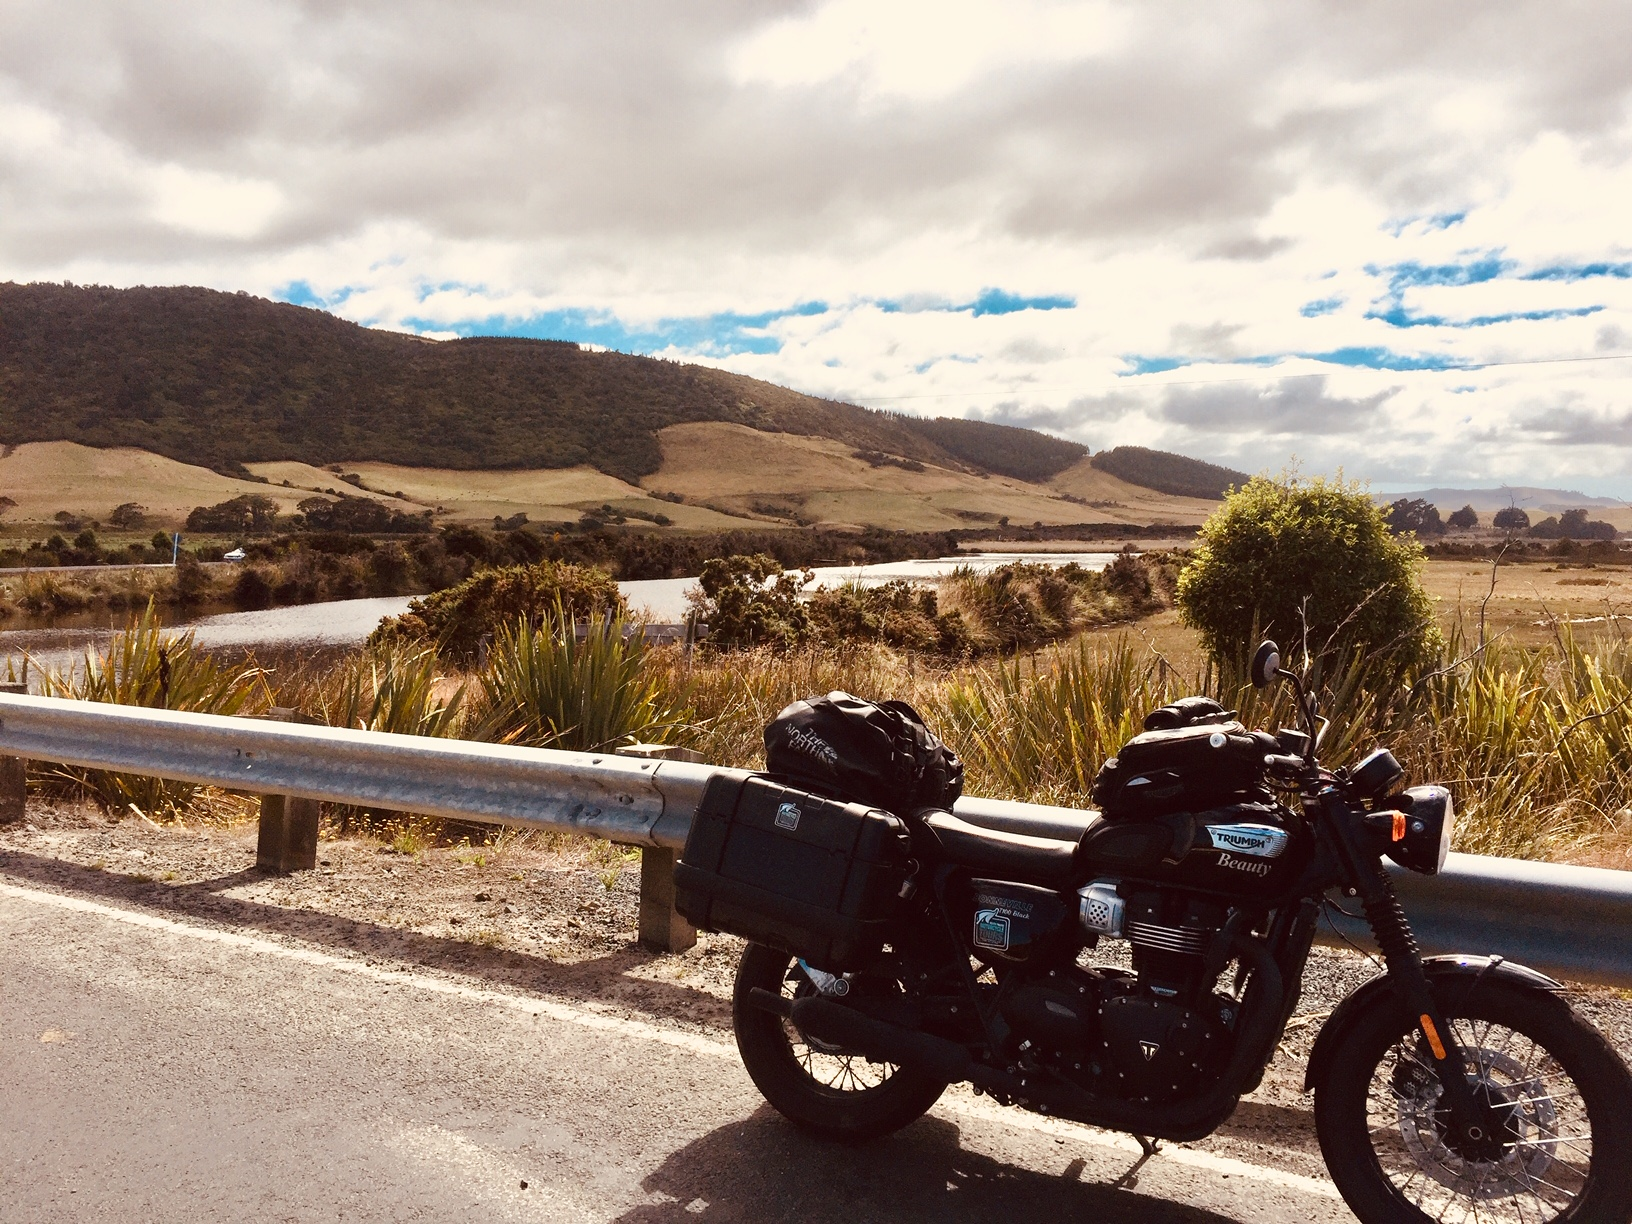 Zoe-Cano-New-Zealand-Adventure-Rider-Radio-Motorcycle-Podcast-3.jpeg